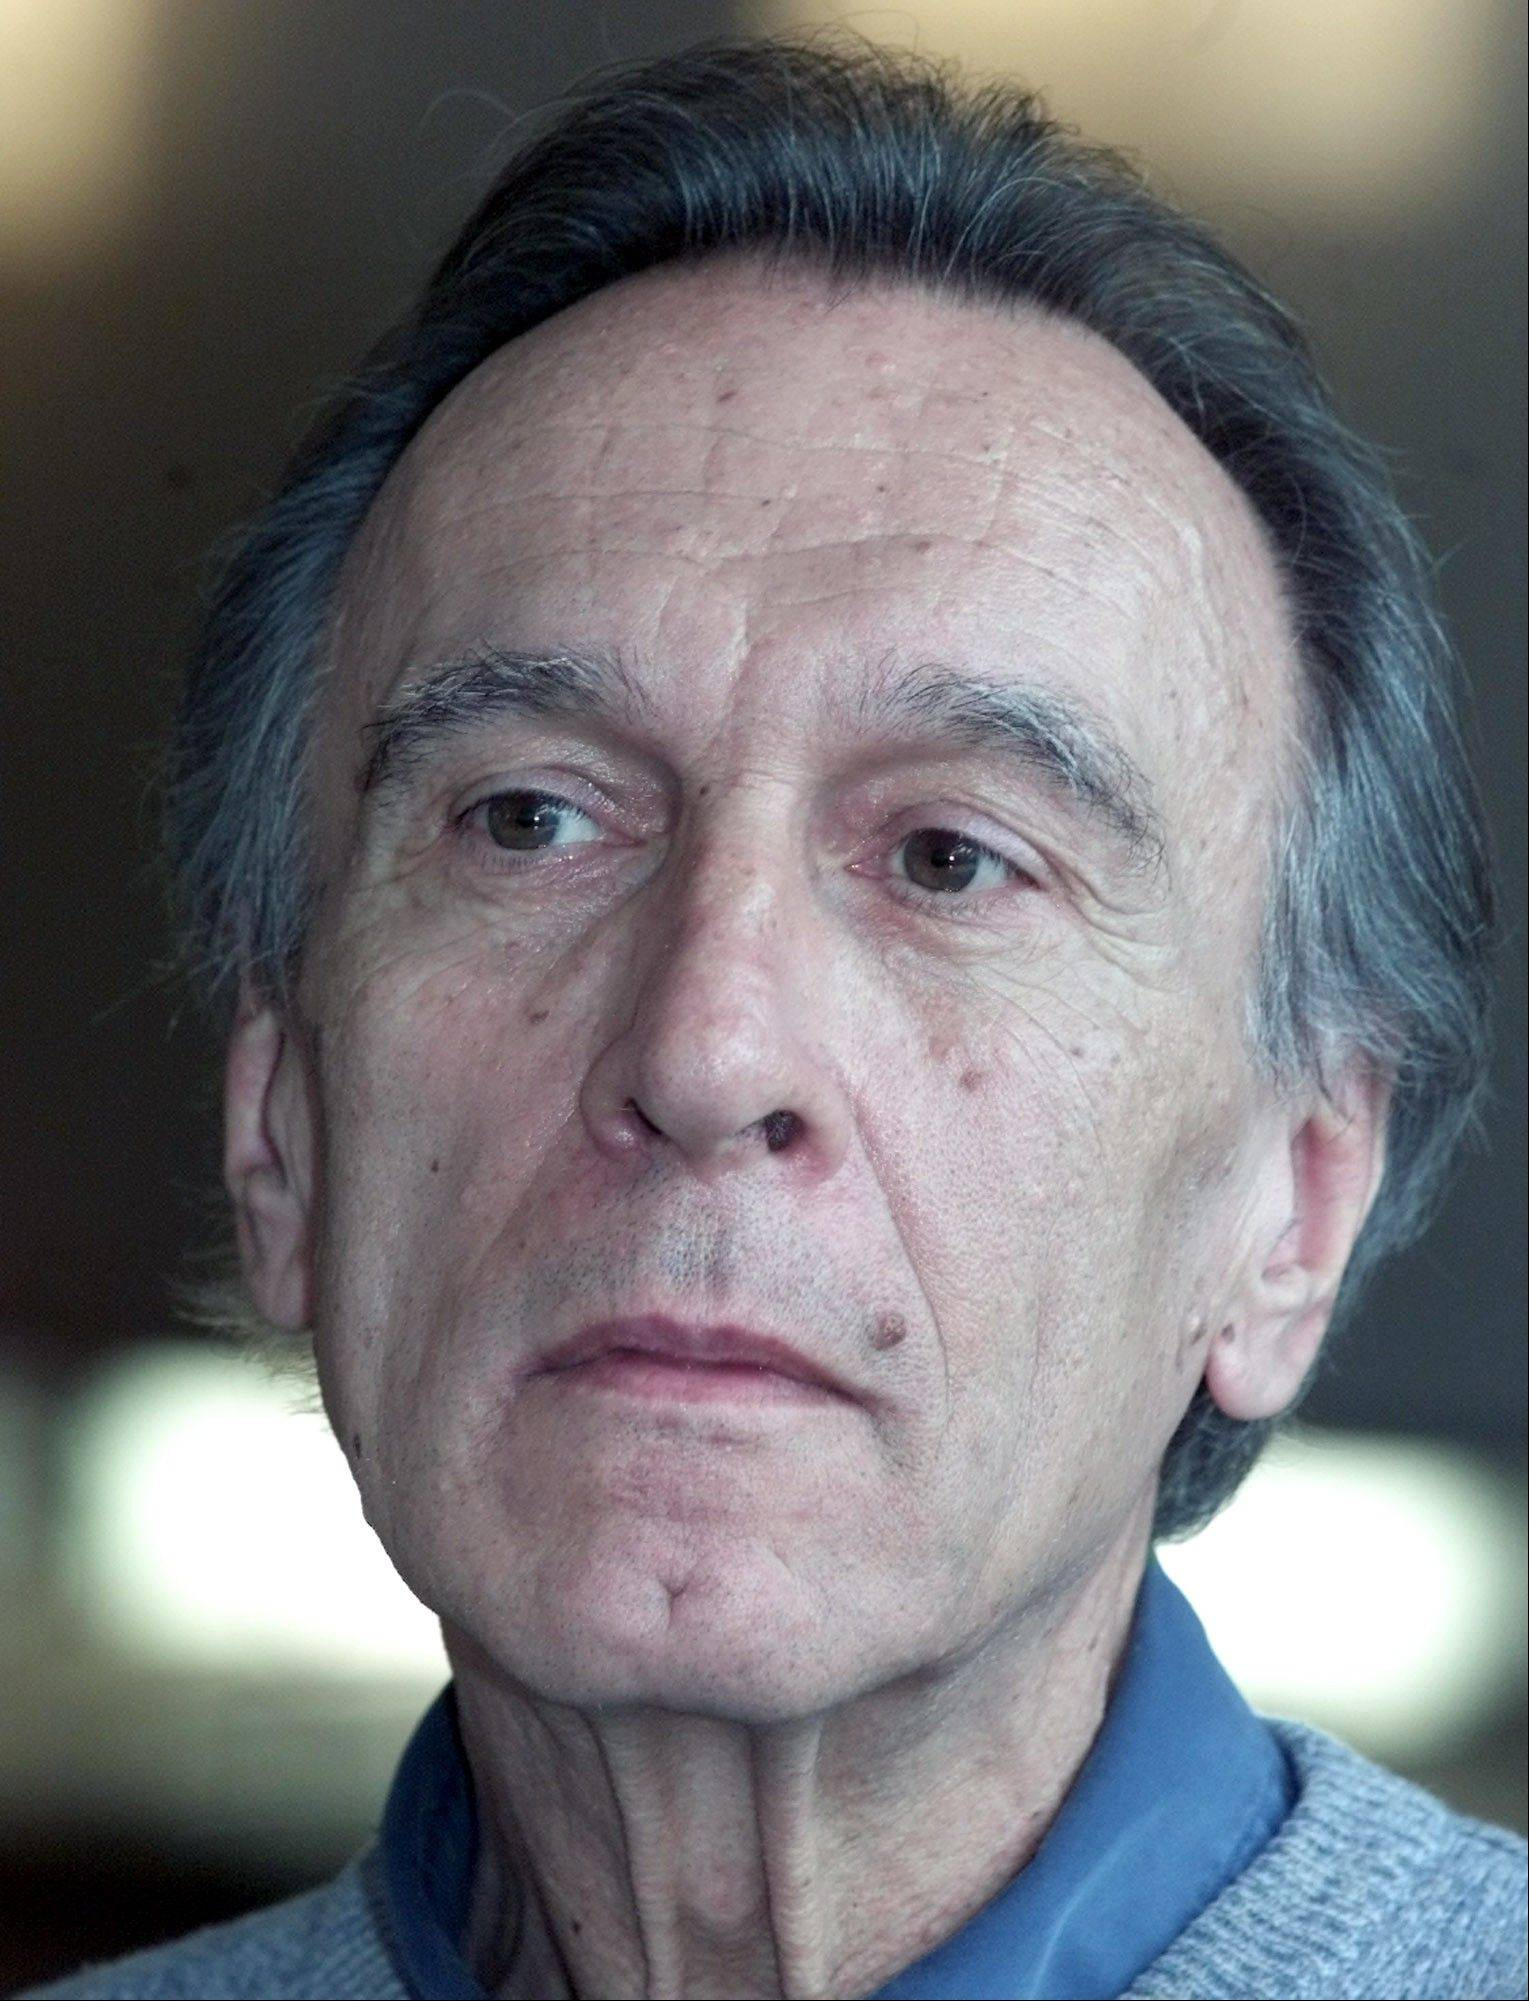 Senior conductor of the Berlin�s philharmonic orchestra Claudio Abbado attends a press conference in Berlin. Claudio Abbado, a star in the great generation of Italian conductors who was revered by musicians in the world�s leading orchestras, died Monday. He was 80.